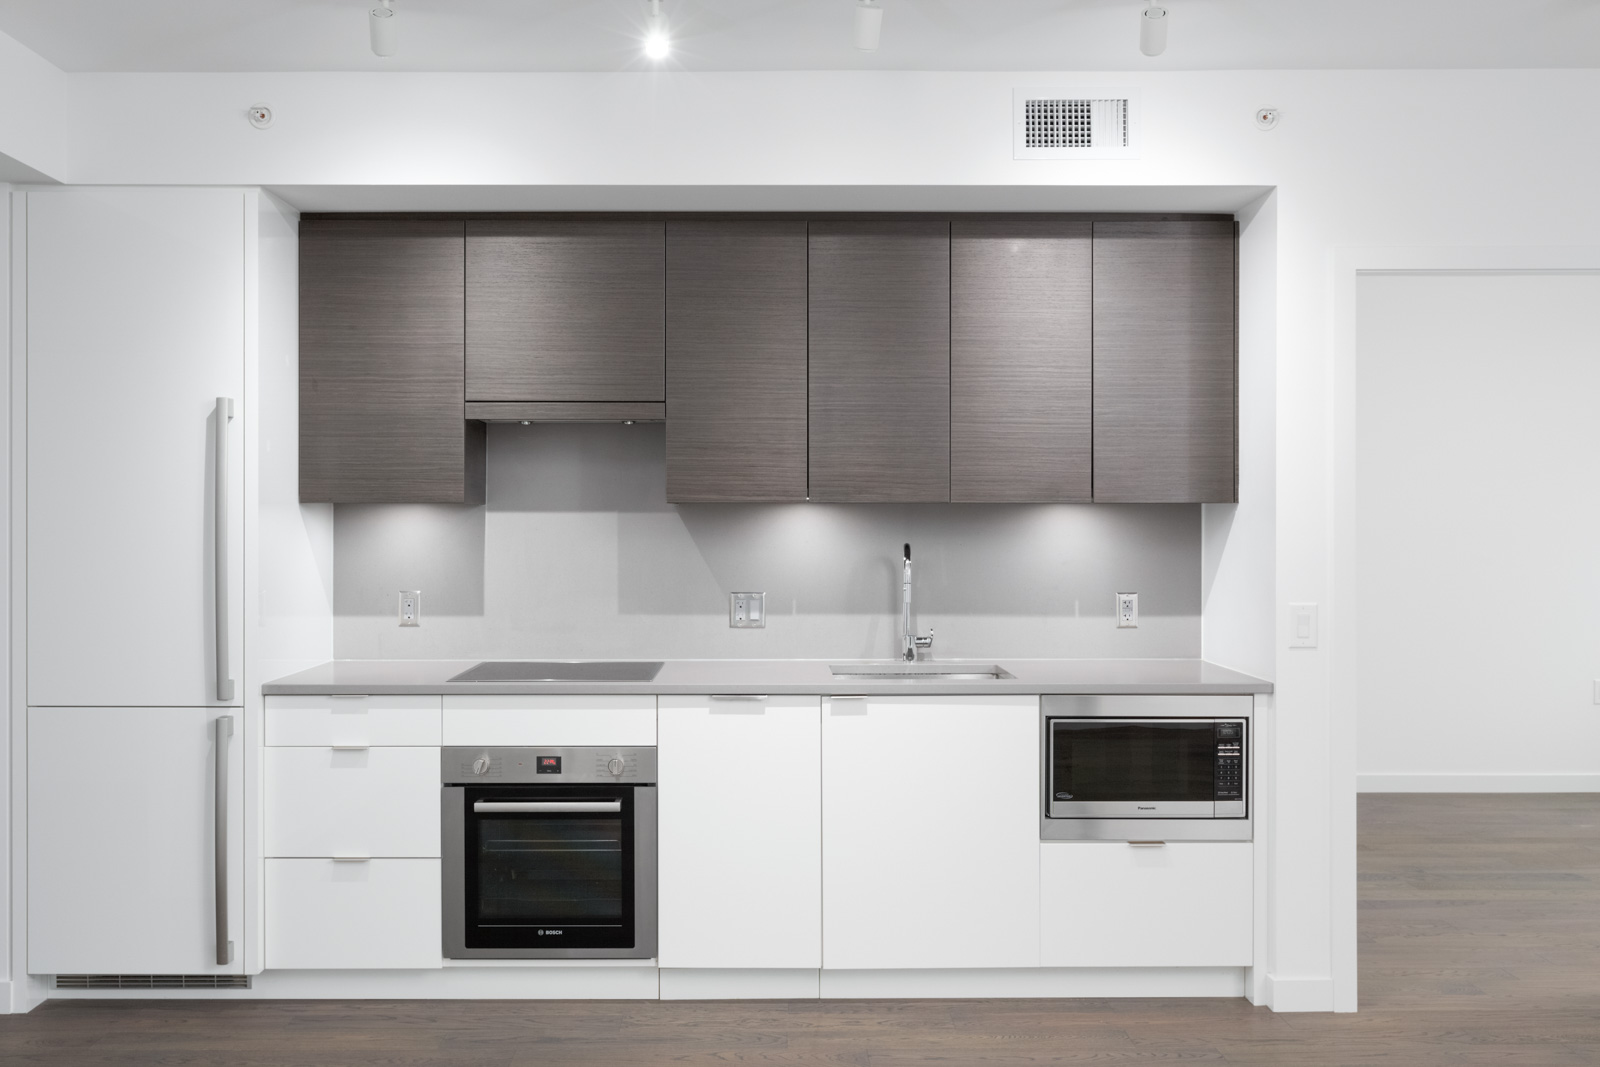 kitchen in navio south leed gold building in olympic village vancouver condo rental managed by birds nest properties